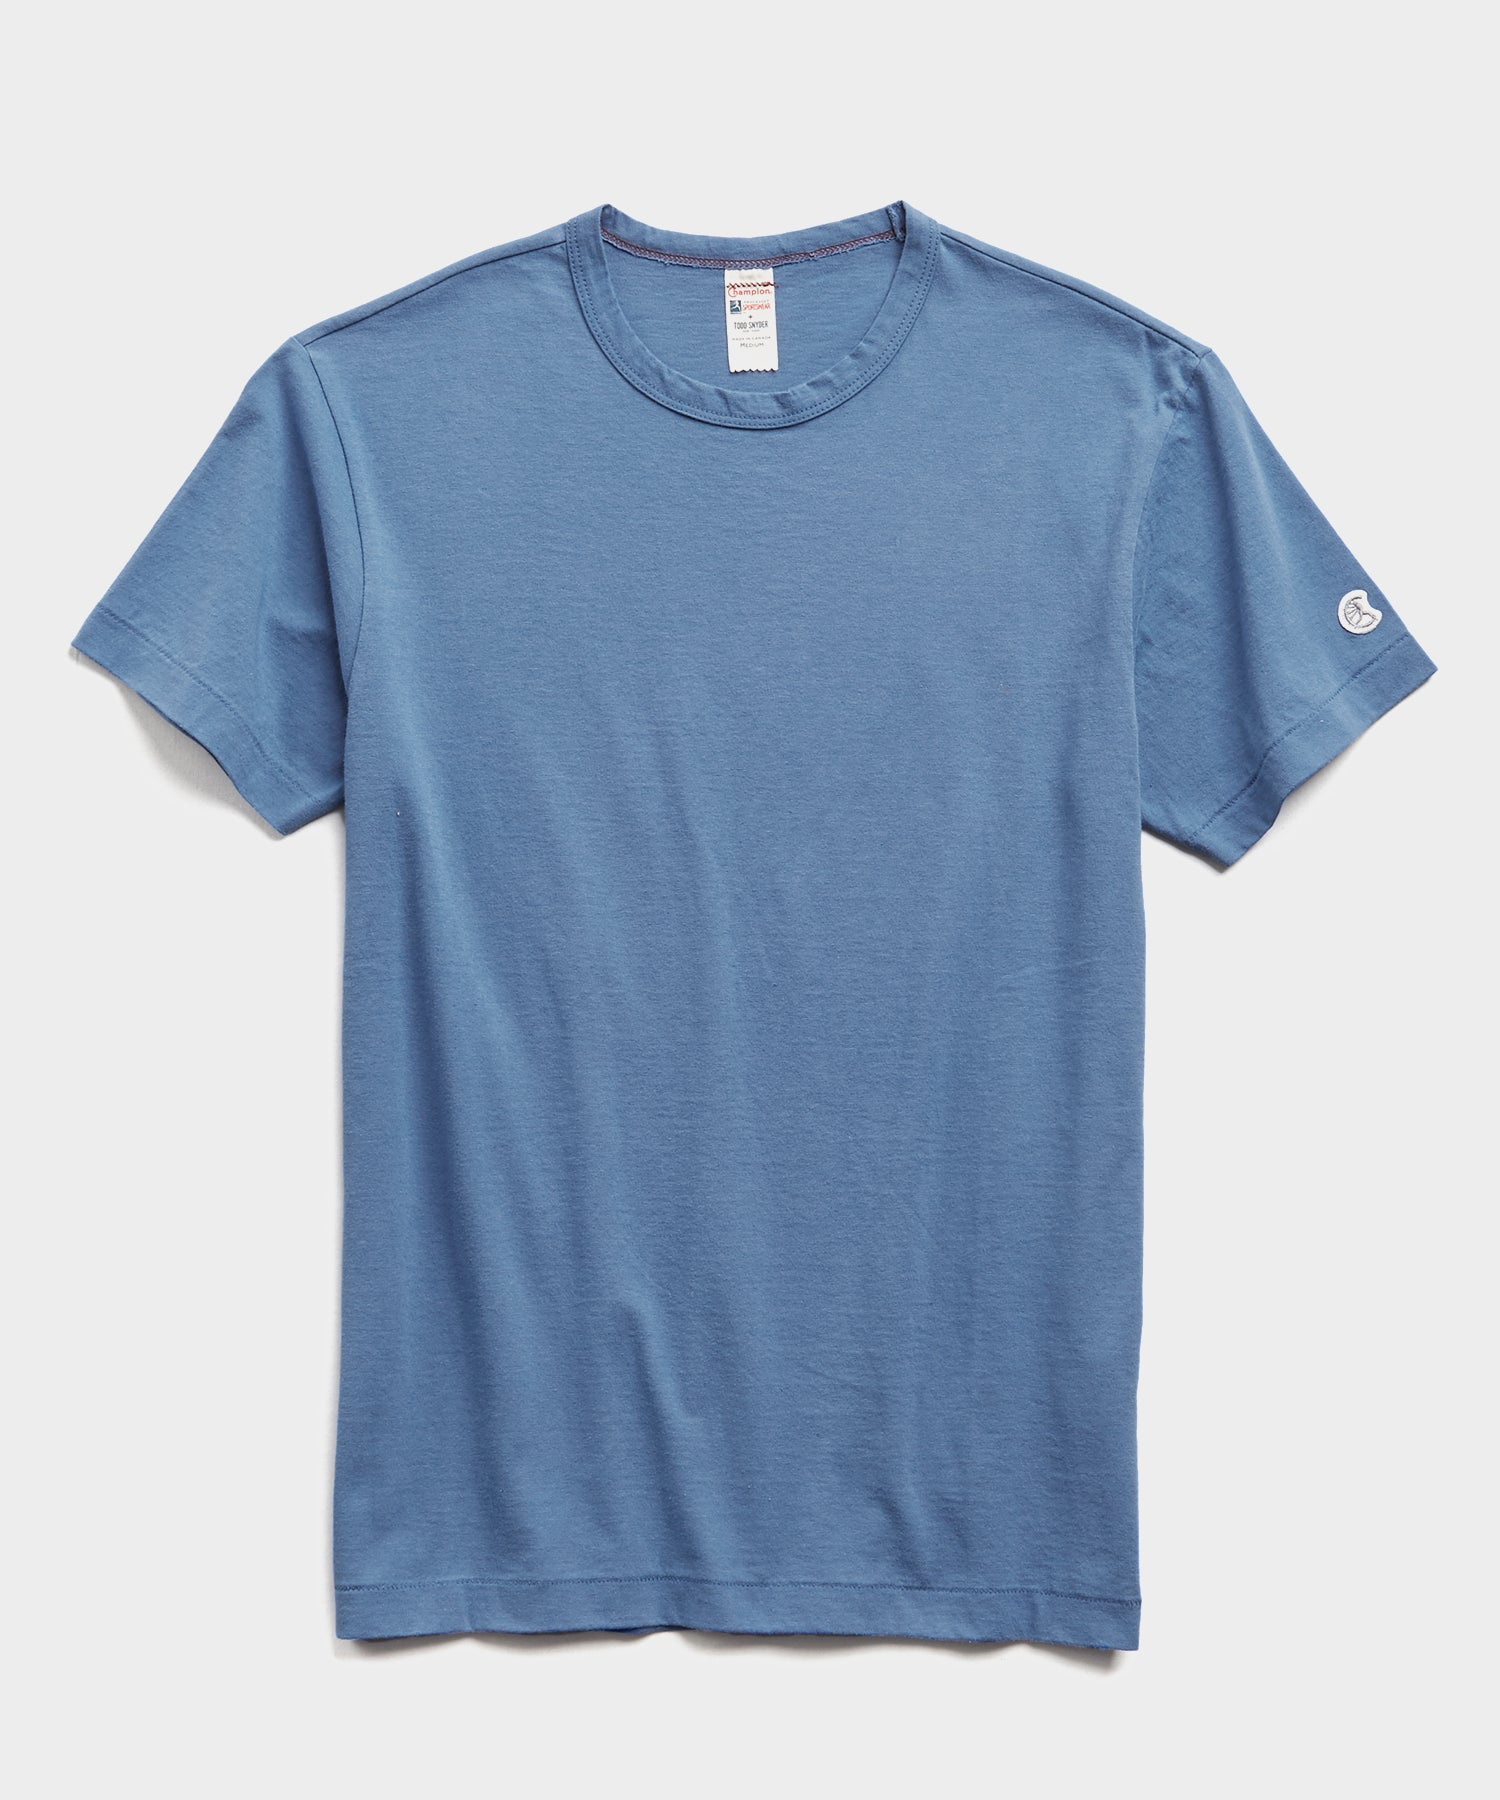 Champion Basic Jersey Tee in Cadet Blue